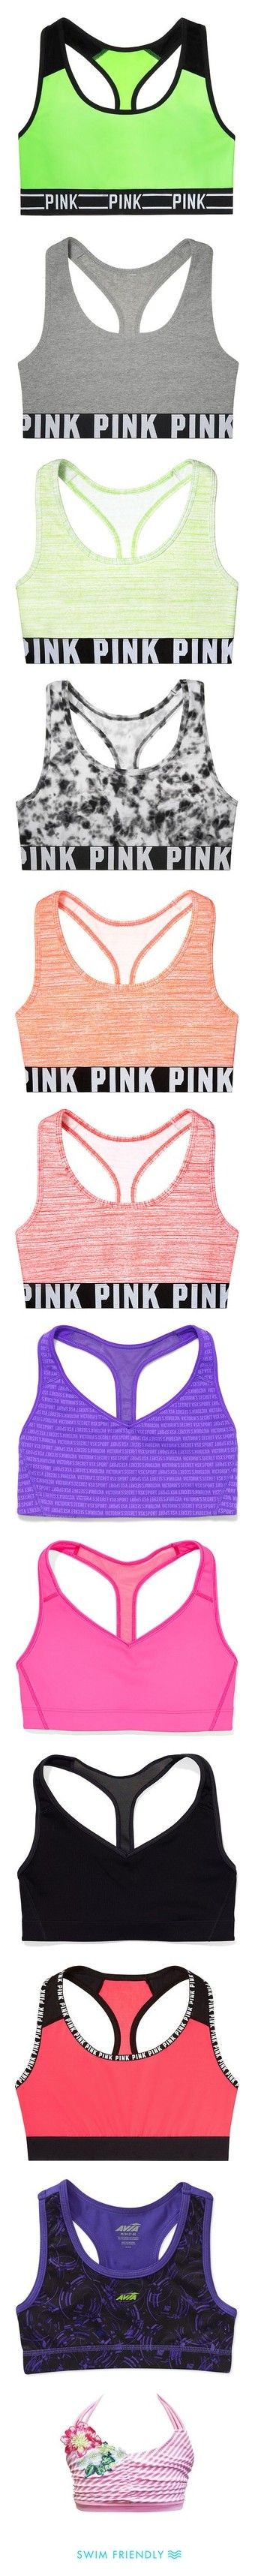 """Sports/Dance Bras 2"" by simpsonizer0718 ❤ liked on Polyvore featuring underwear, bra, tops, sports bra, victoria's secret, activewear, sports bras, bras, clothes and shoes and sports"